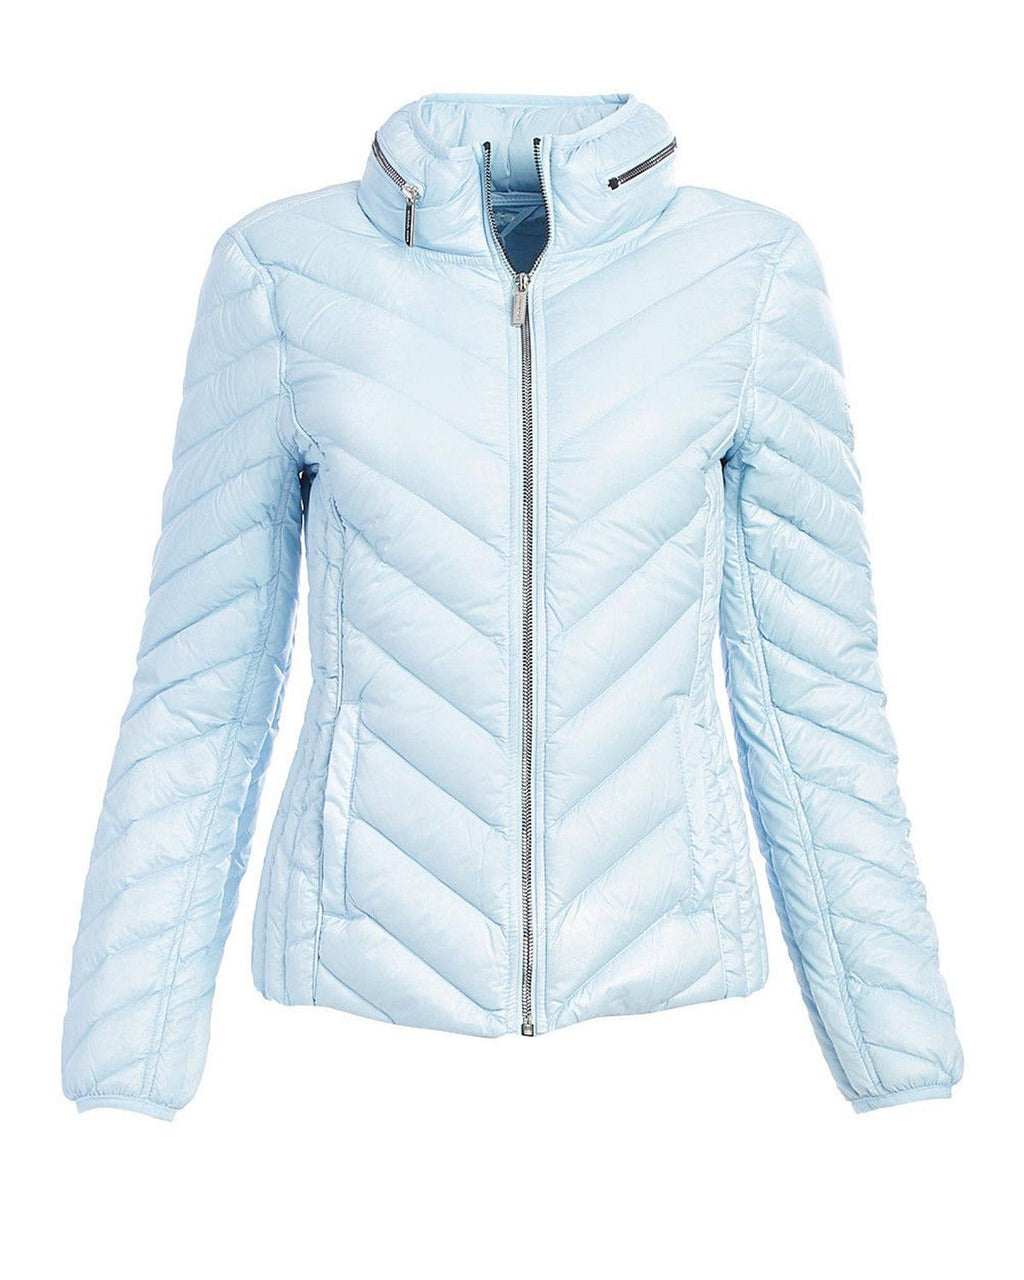 Foida Women Warm and Lightweight Down Puffer Jackets with Zipper